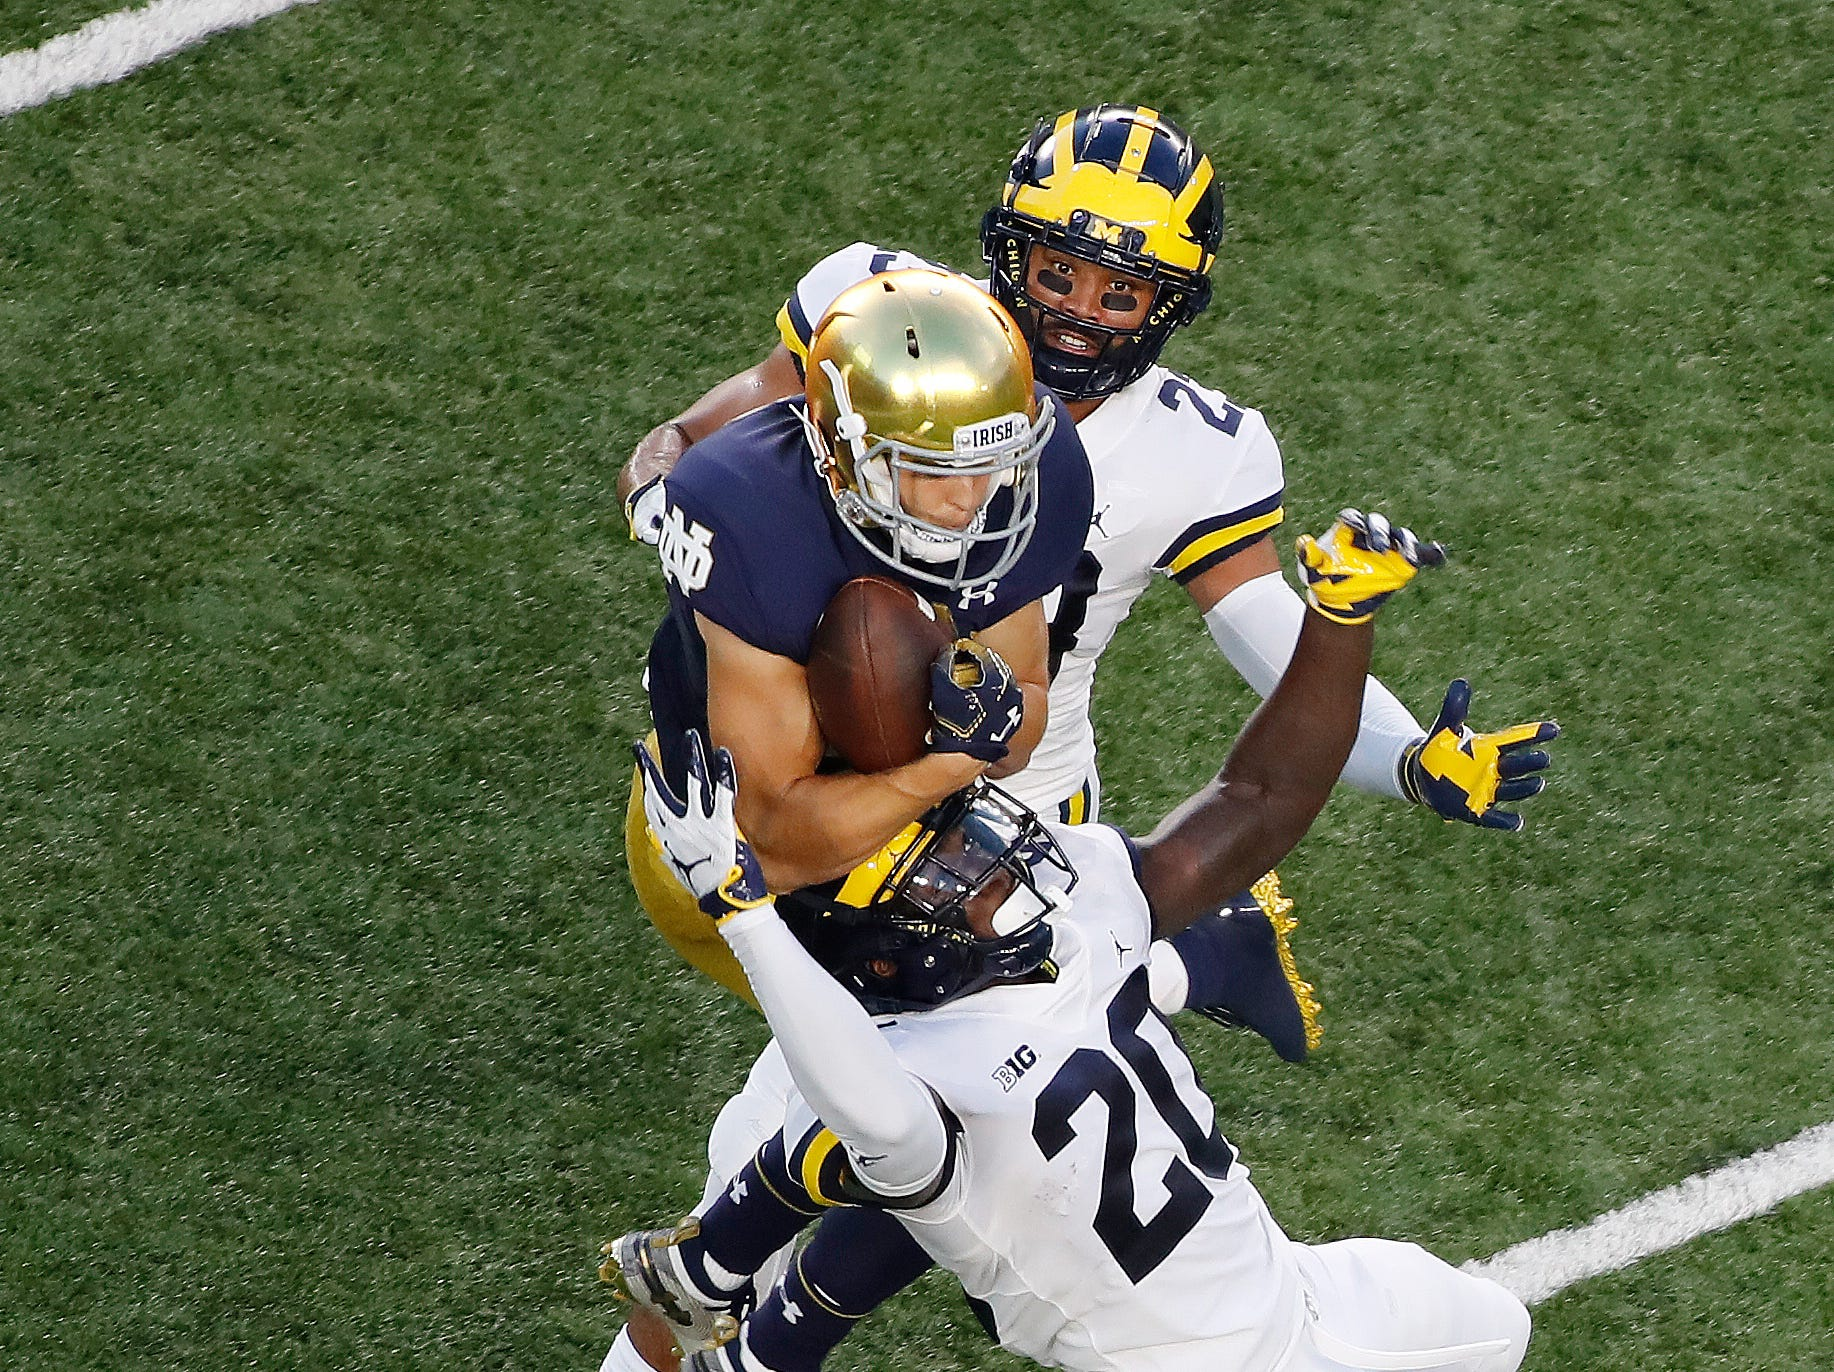 Notre Dame Fighting Irish wide receiver Chris Finke (10) catches a touchdown against the Michigan Wolverines.